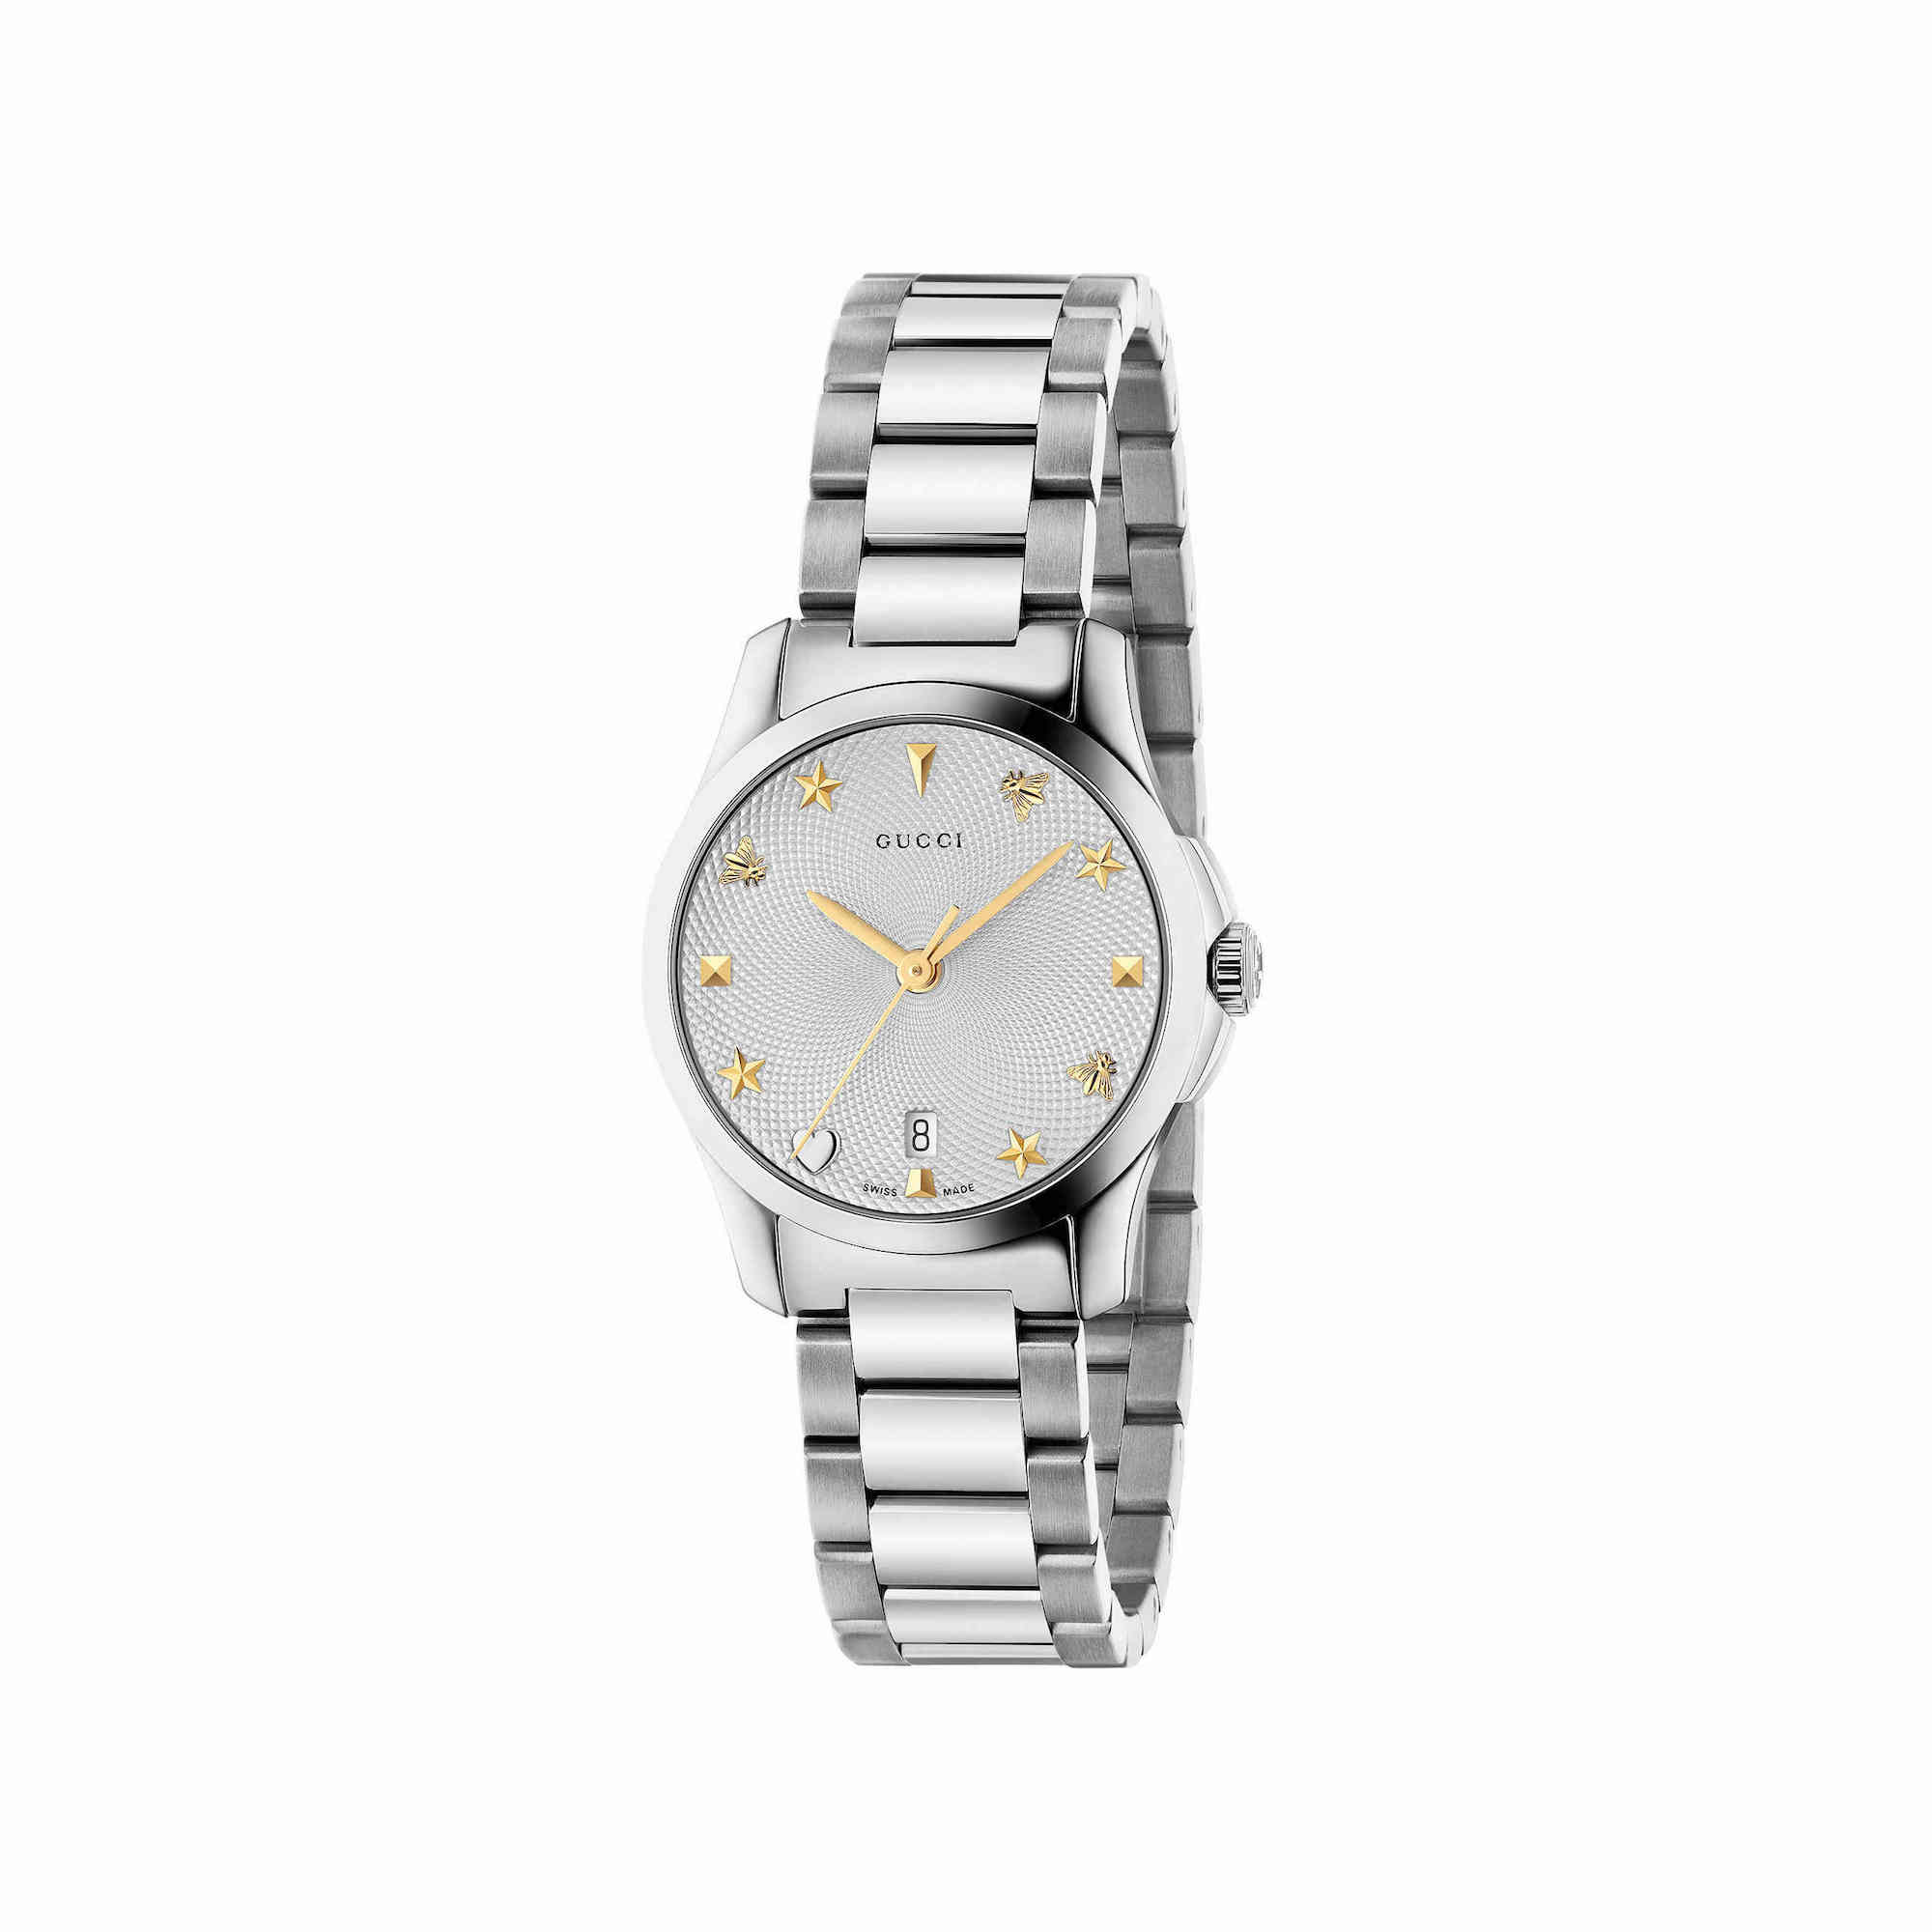 Orologio Gucci G-Timeless donna